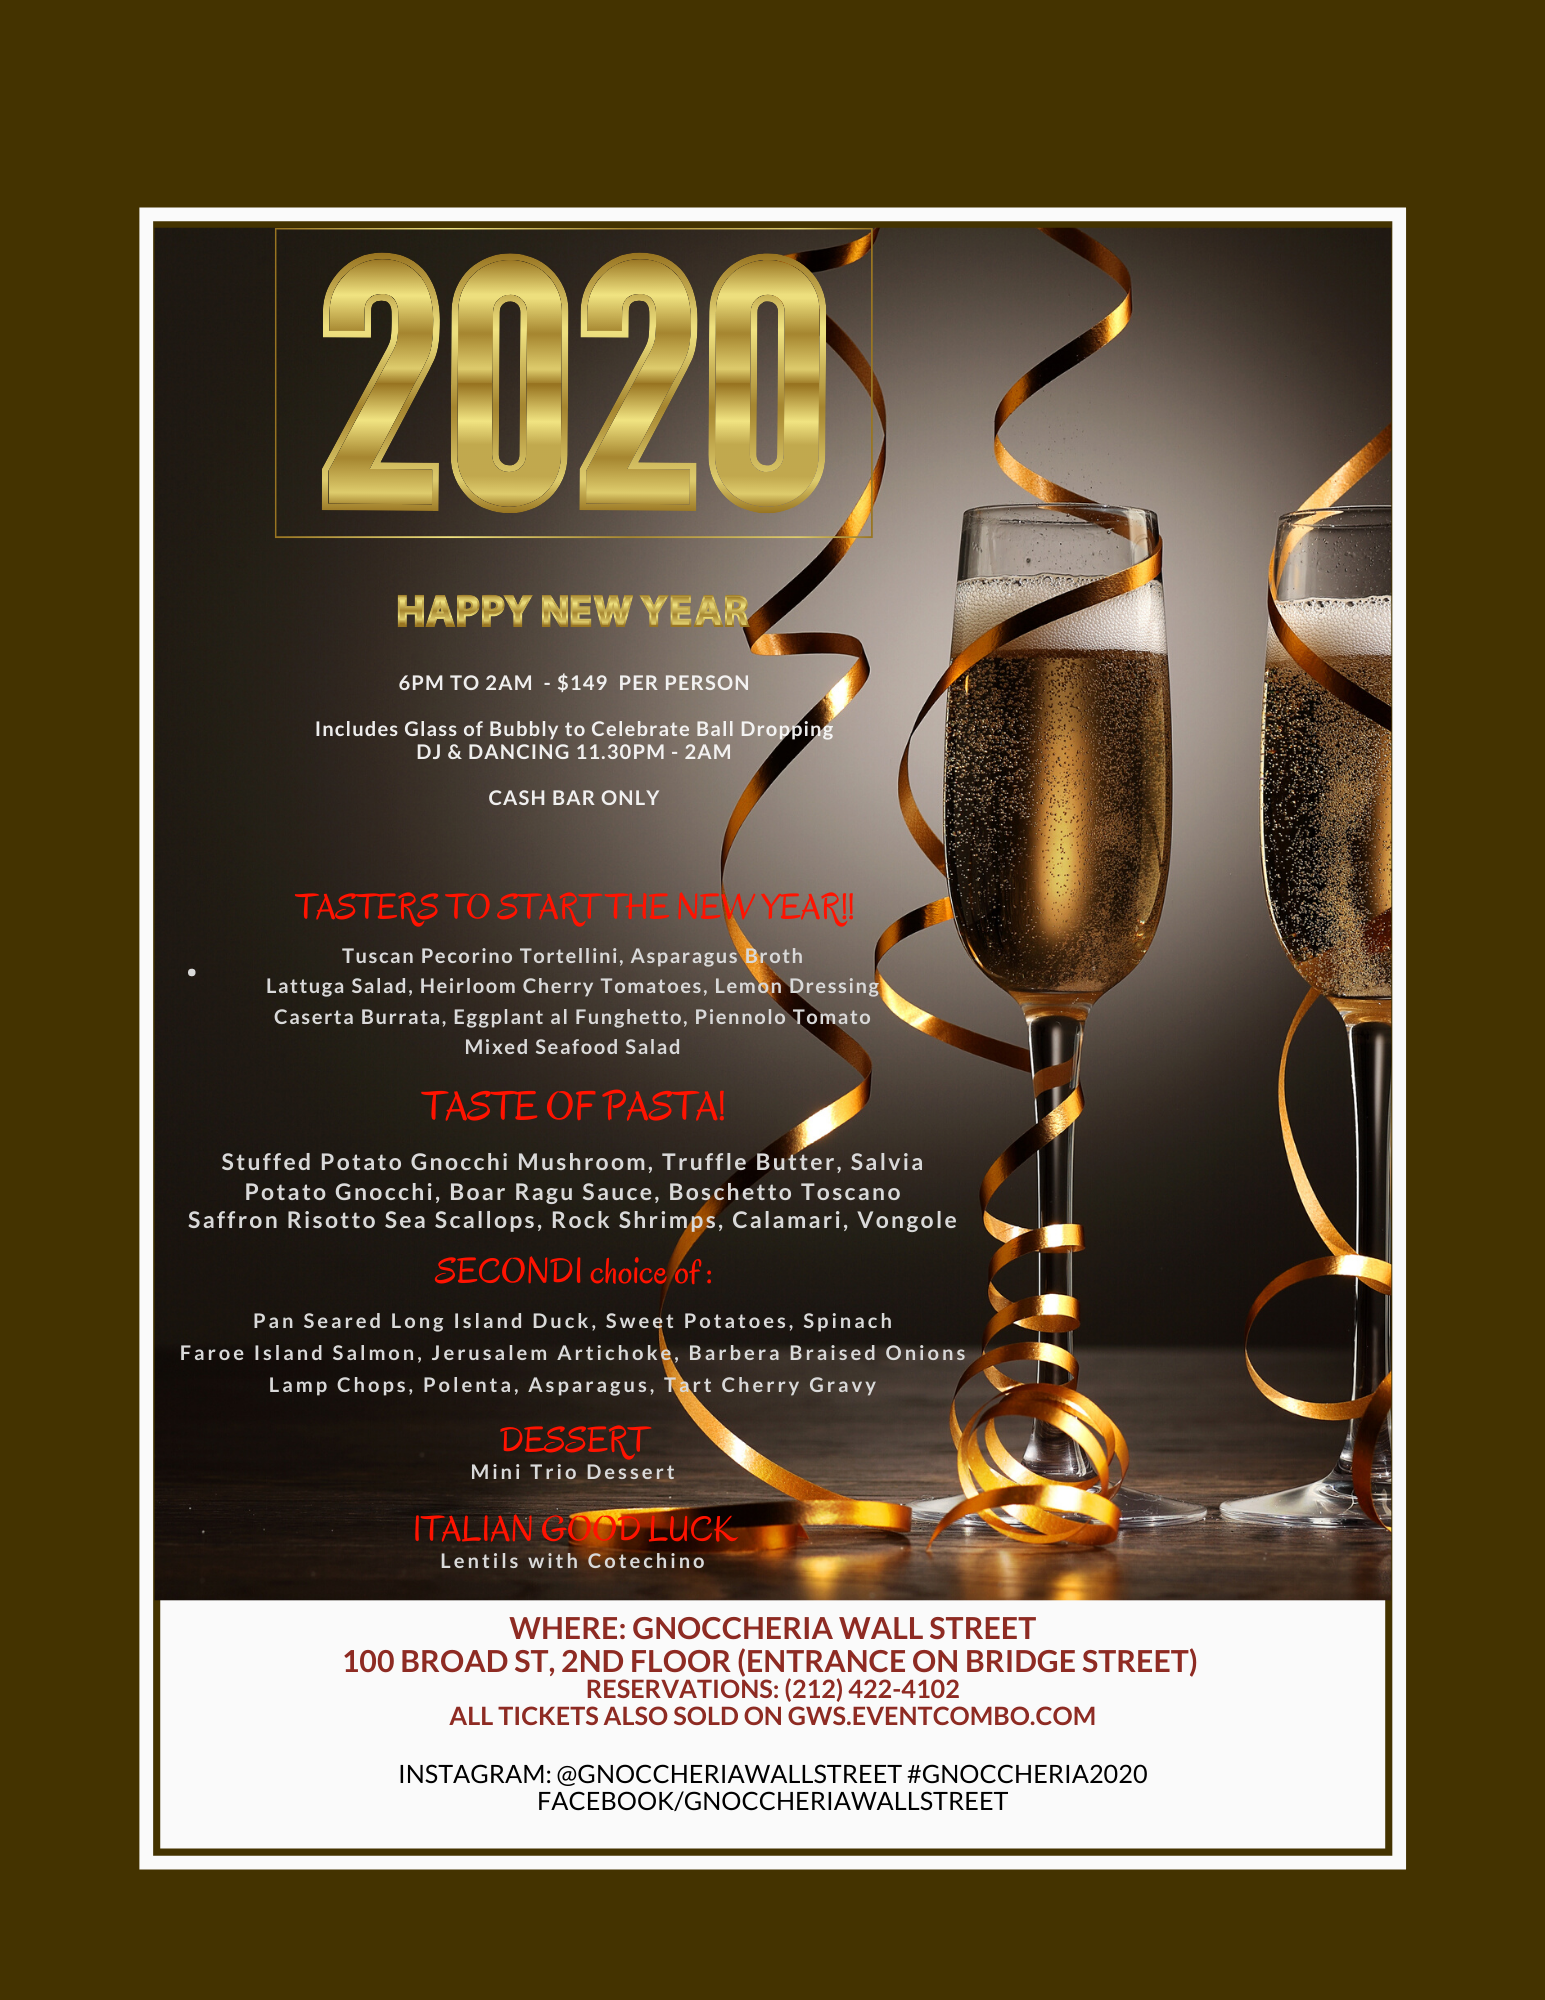 Gnoccheria Wall Street New Year's Eve 2020 Dinner and Party